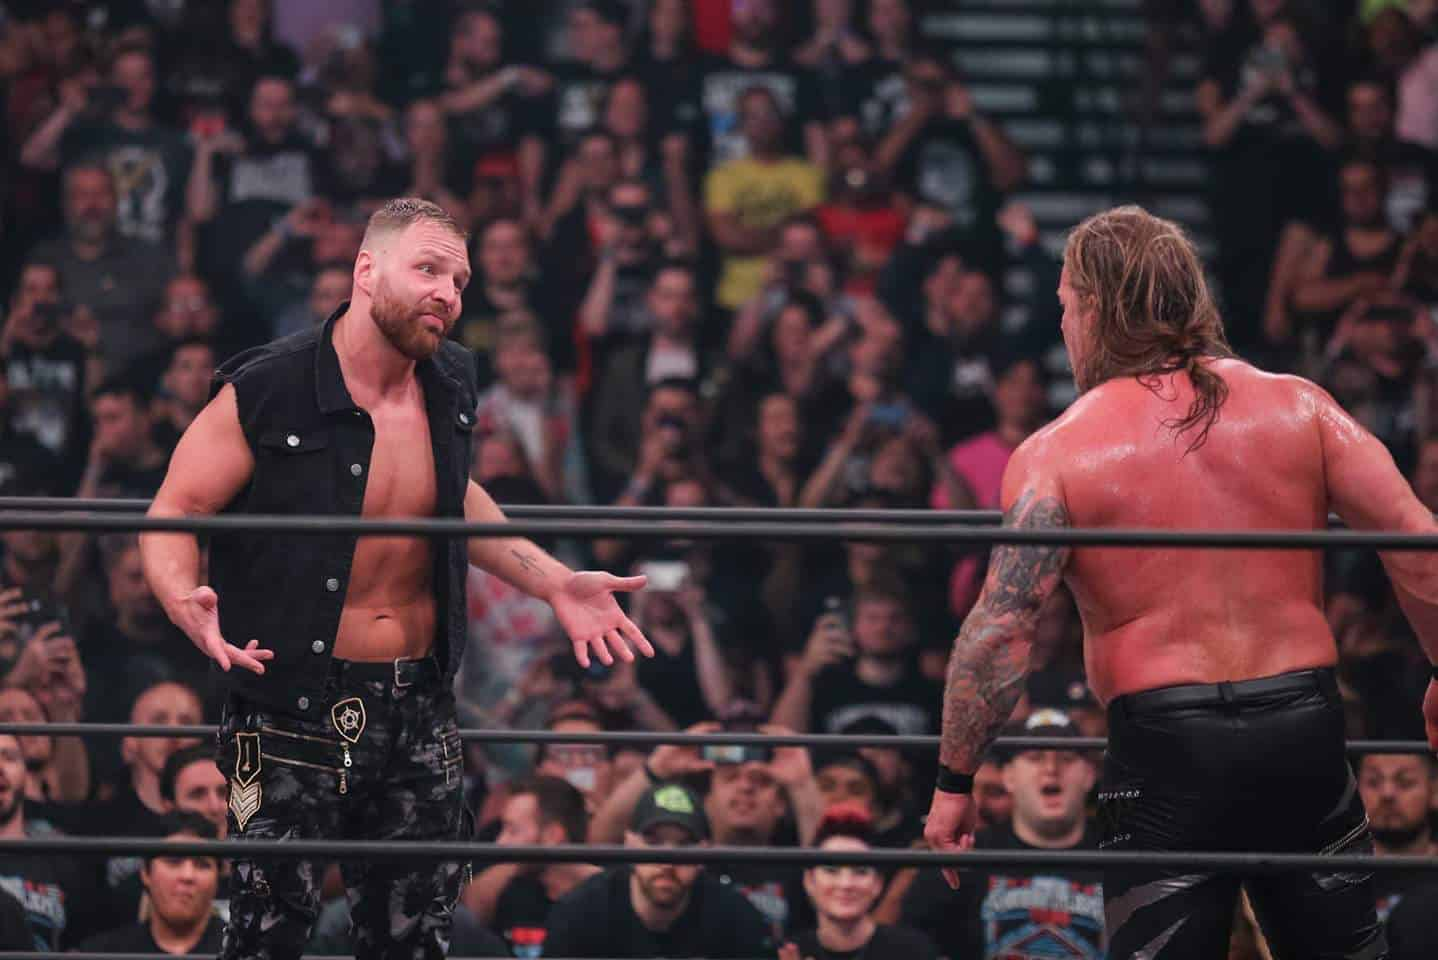 Jon Moxley makes a surprise appearance at AEW's Double or Nothing pay-per-view facing off with Chris Jericho